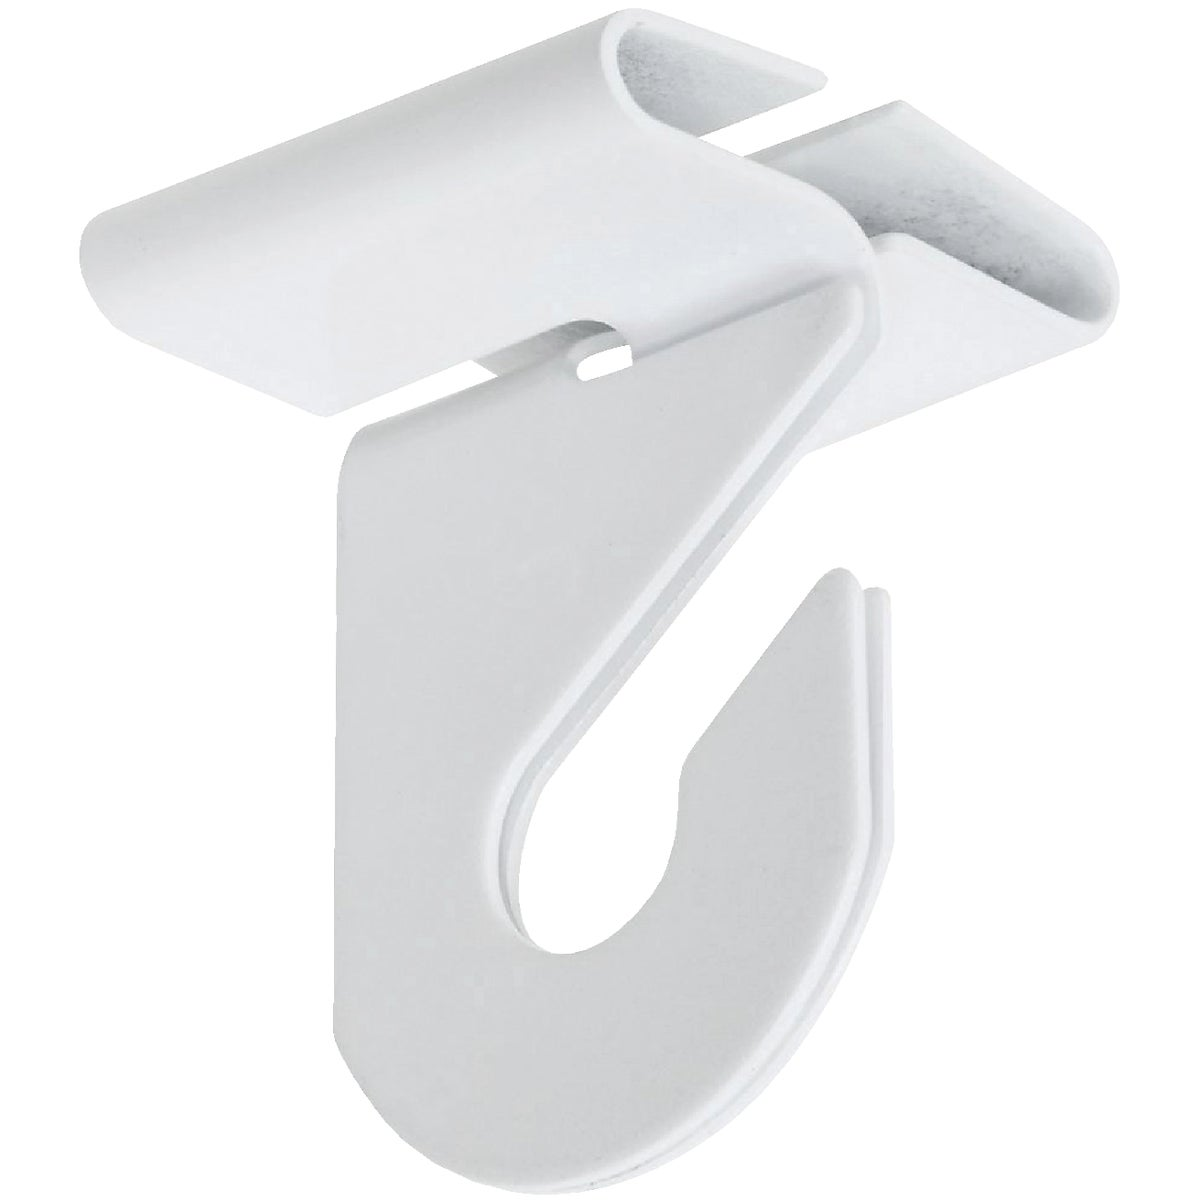 WHT SUSPEND CEILING HOOK - N274969 by National Mfg Co